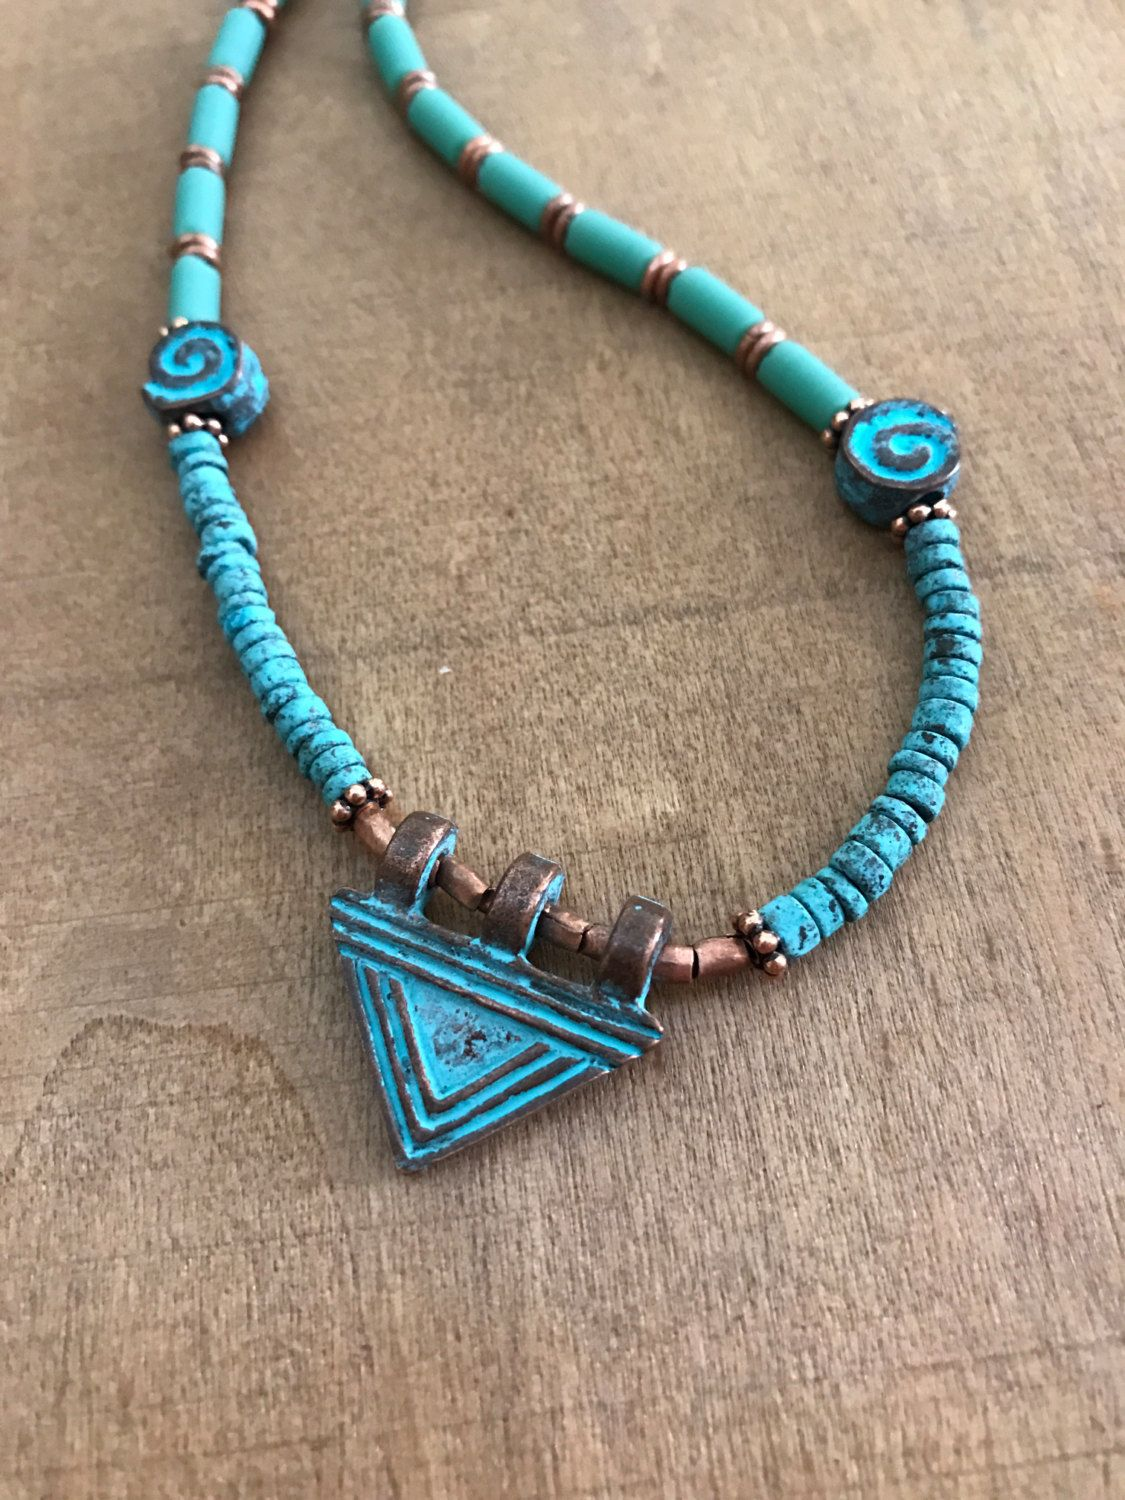 Ancient style, tribal necklace, Greek beaded necklace, blue patina, copper and glass beads by Omanie on Etsy